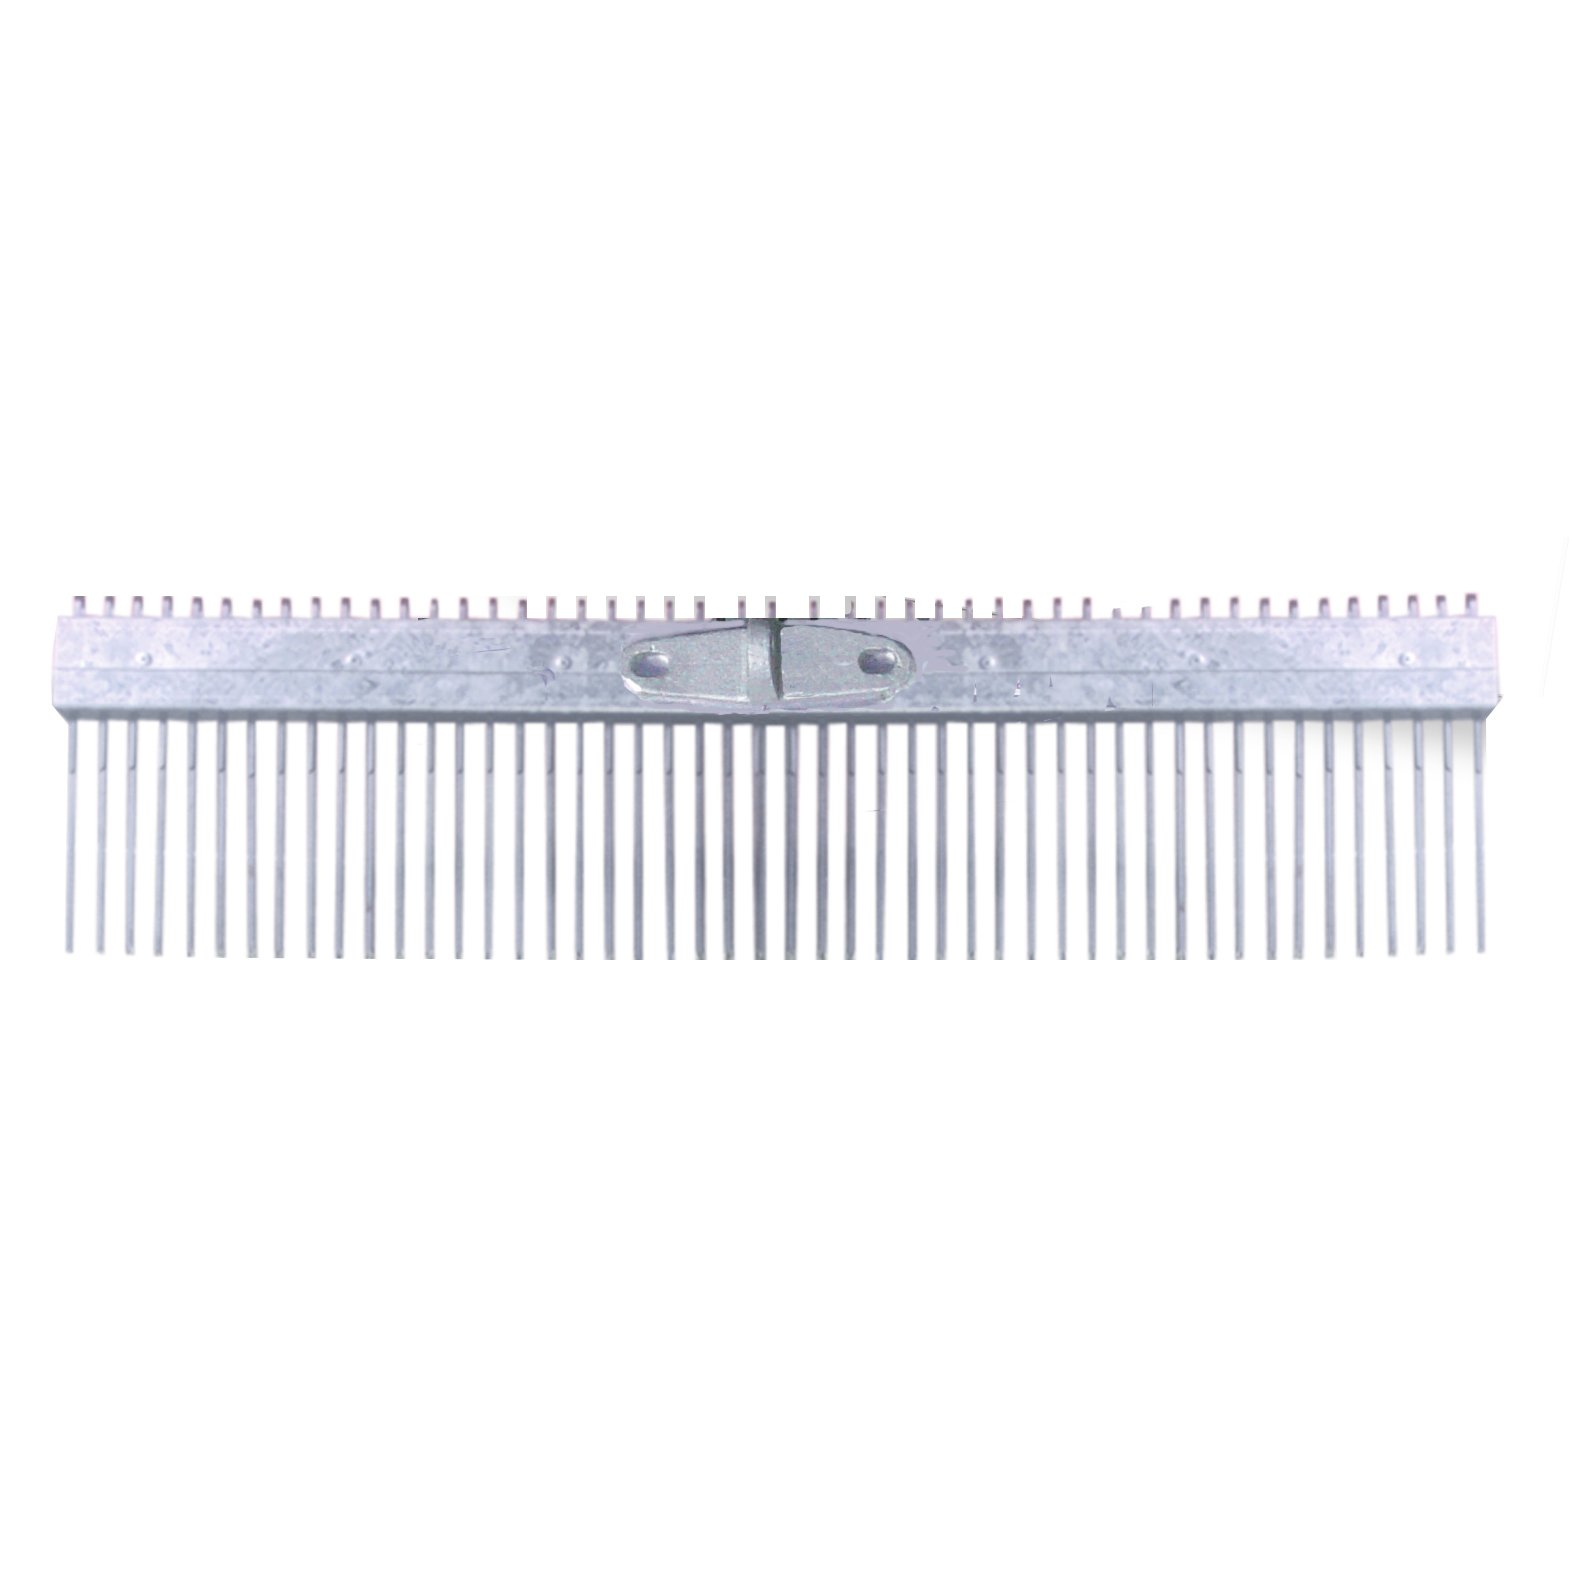 Bon 82-543 Texture Comb 60'' 1 1/2'' Center by BON